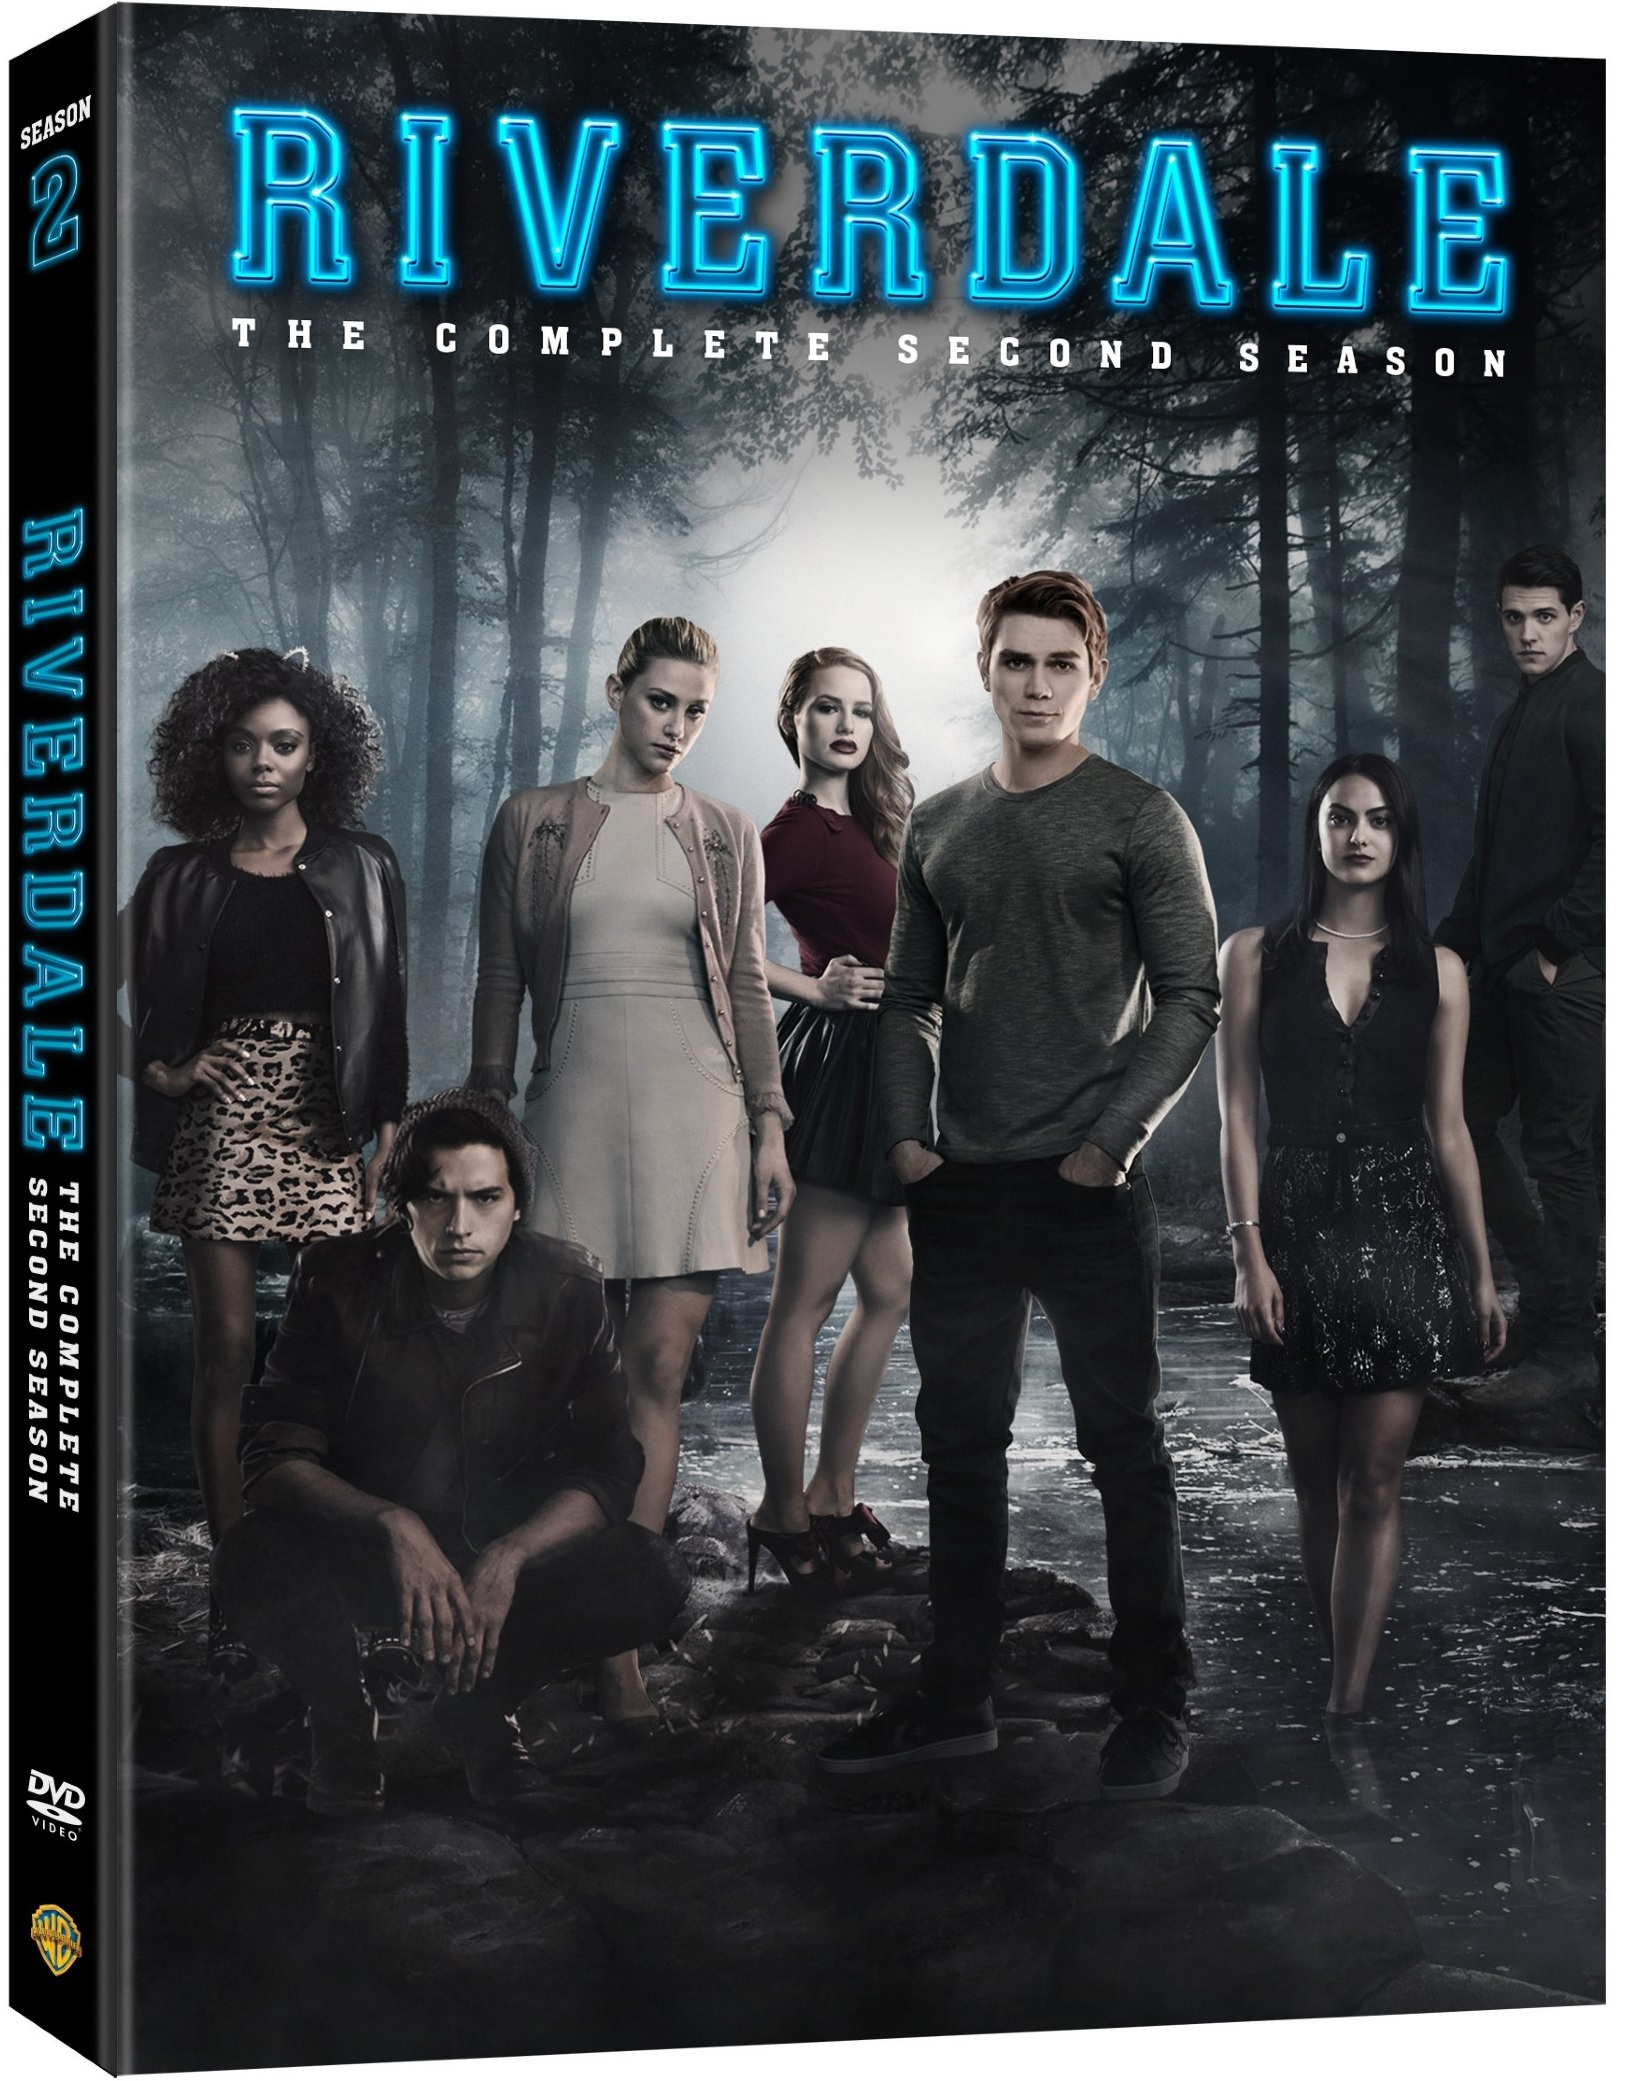 RIVERDALE SEASON TWO DVD